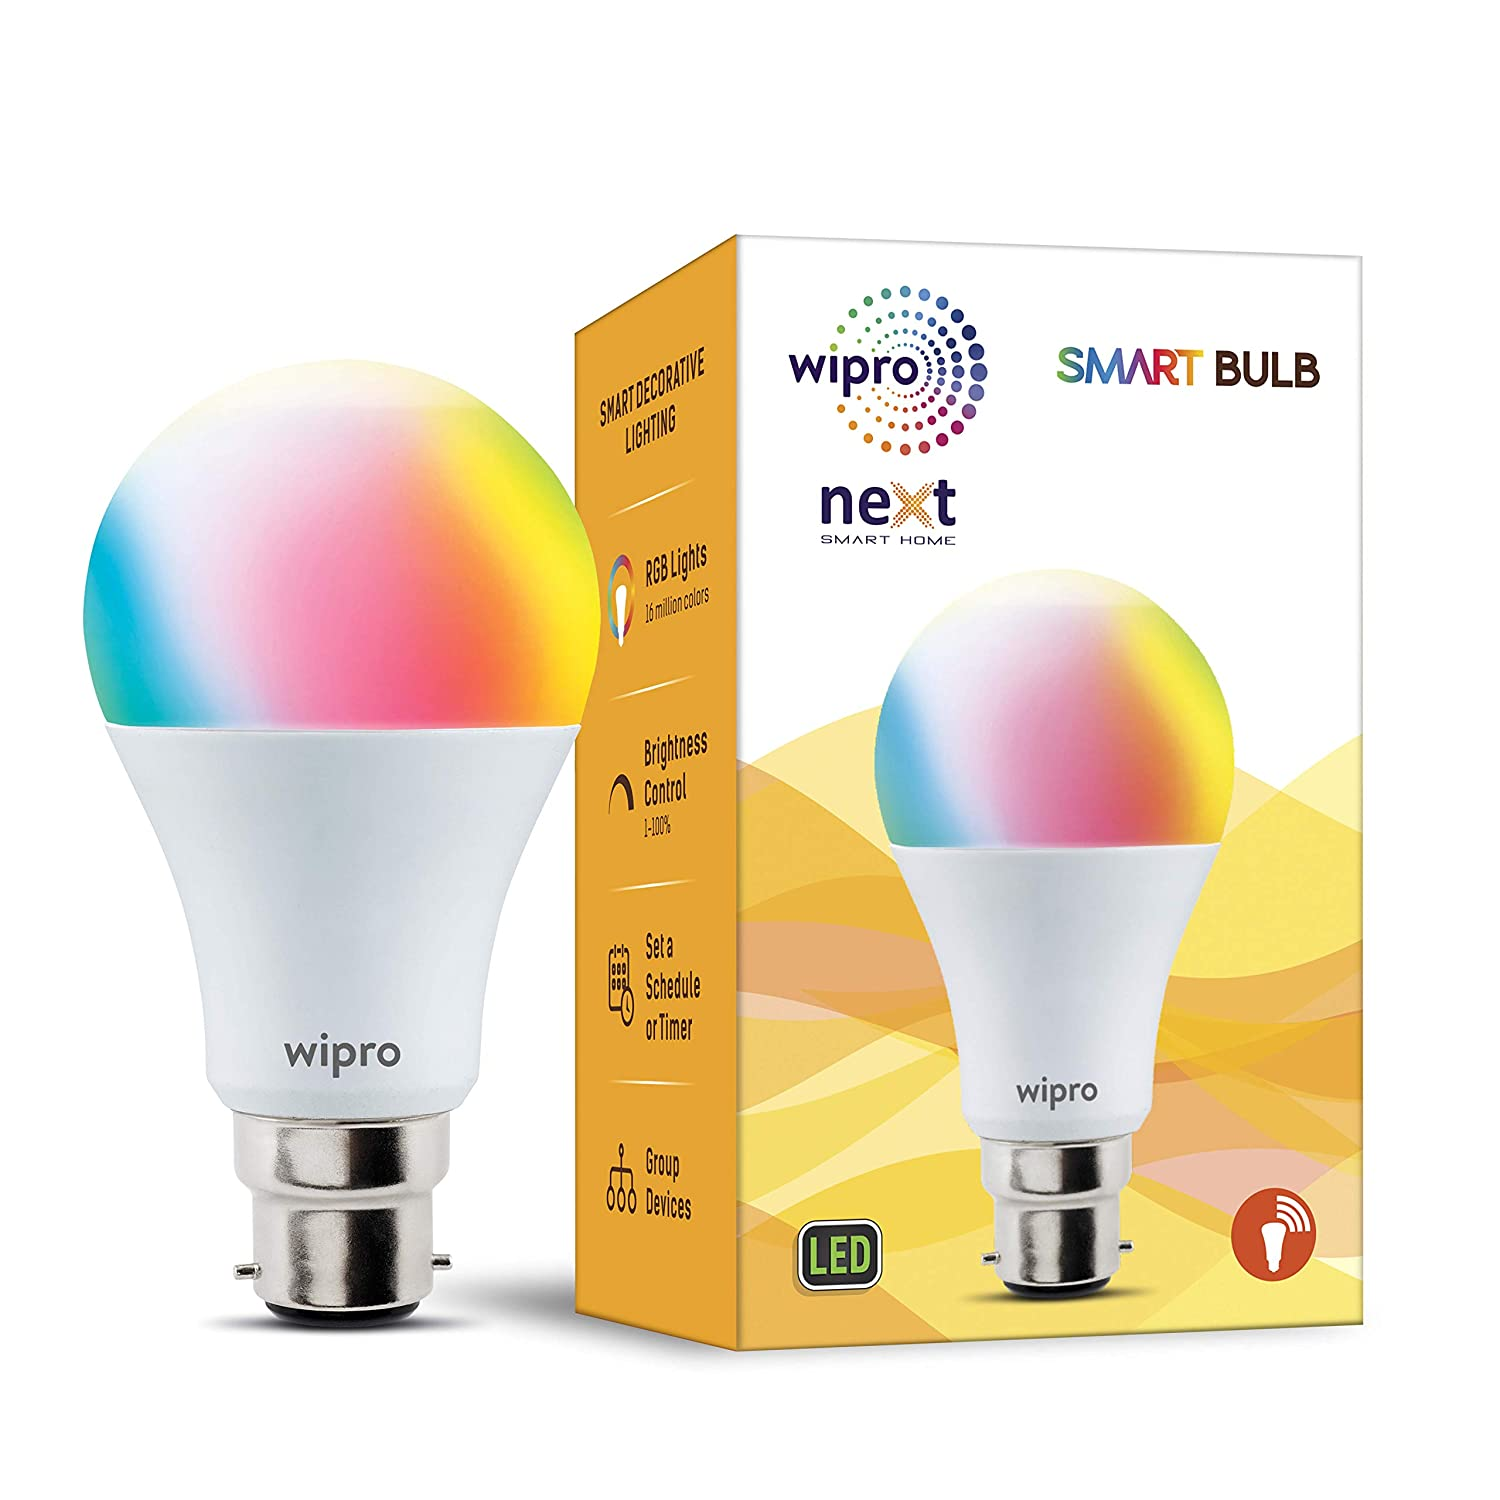 Amazon - Amazon: Wipro WiFi Enabled Smart LED Bulb B22 12-Watt (16 Million Colors + Warm White/Neutral White/White) (Compatible with Amazon Alexa and Google Assistant)